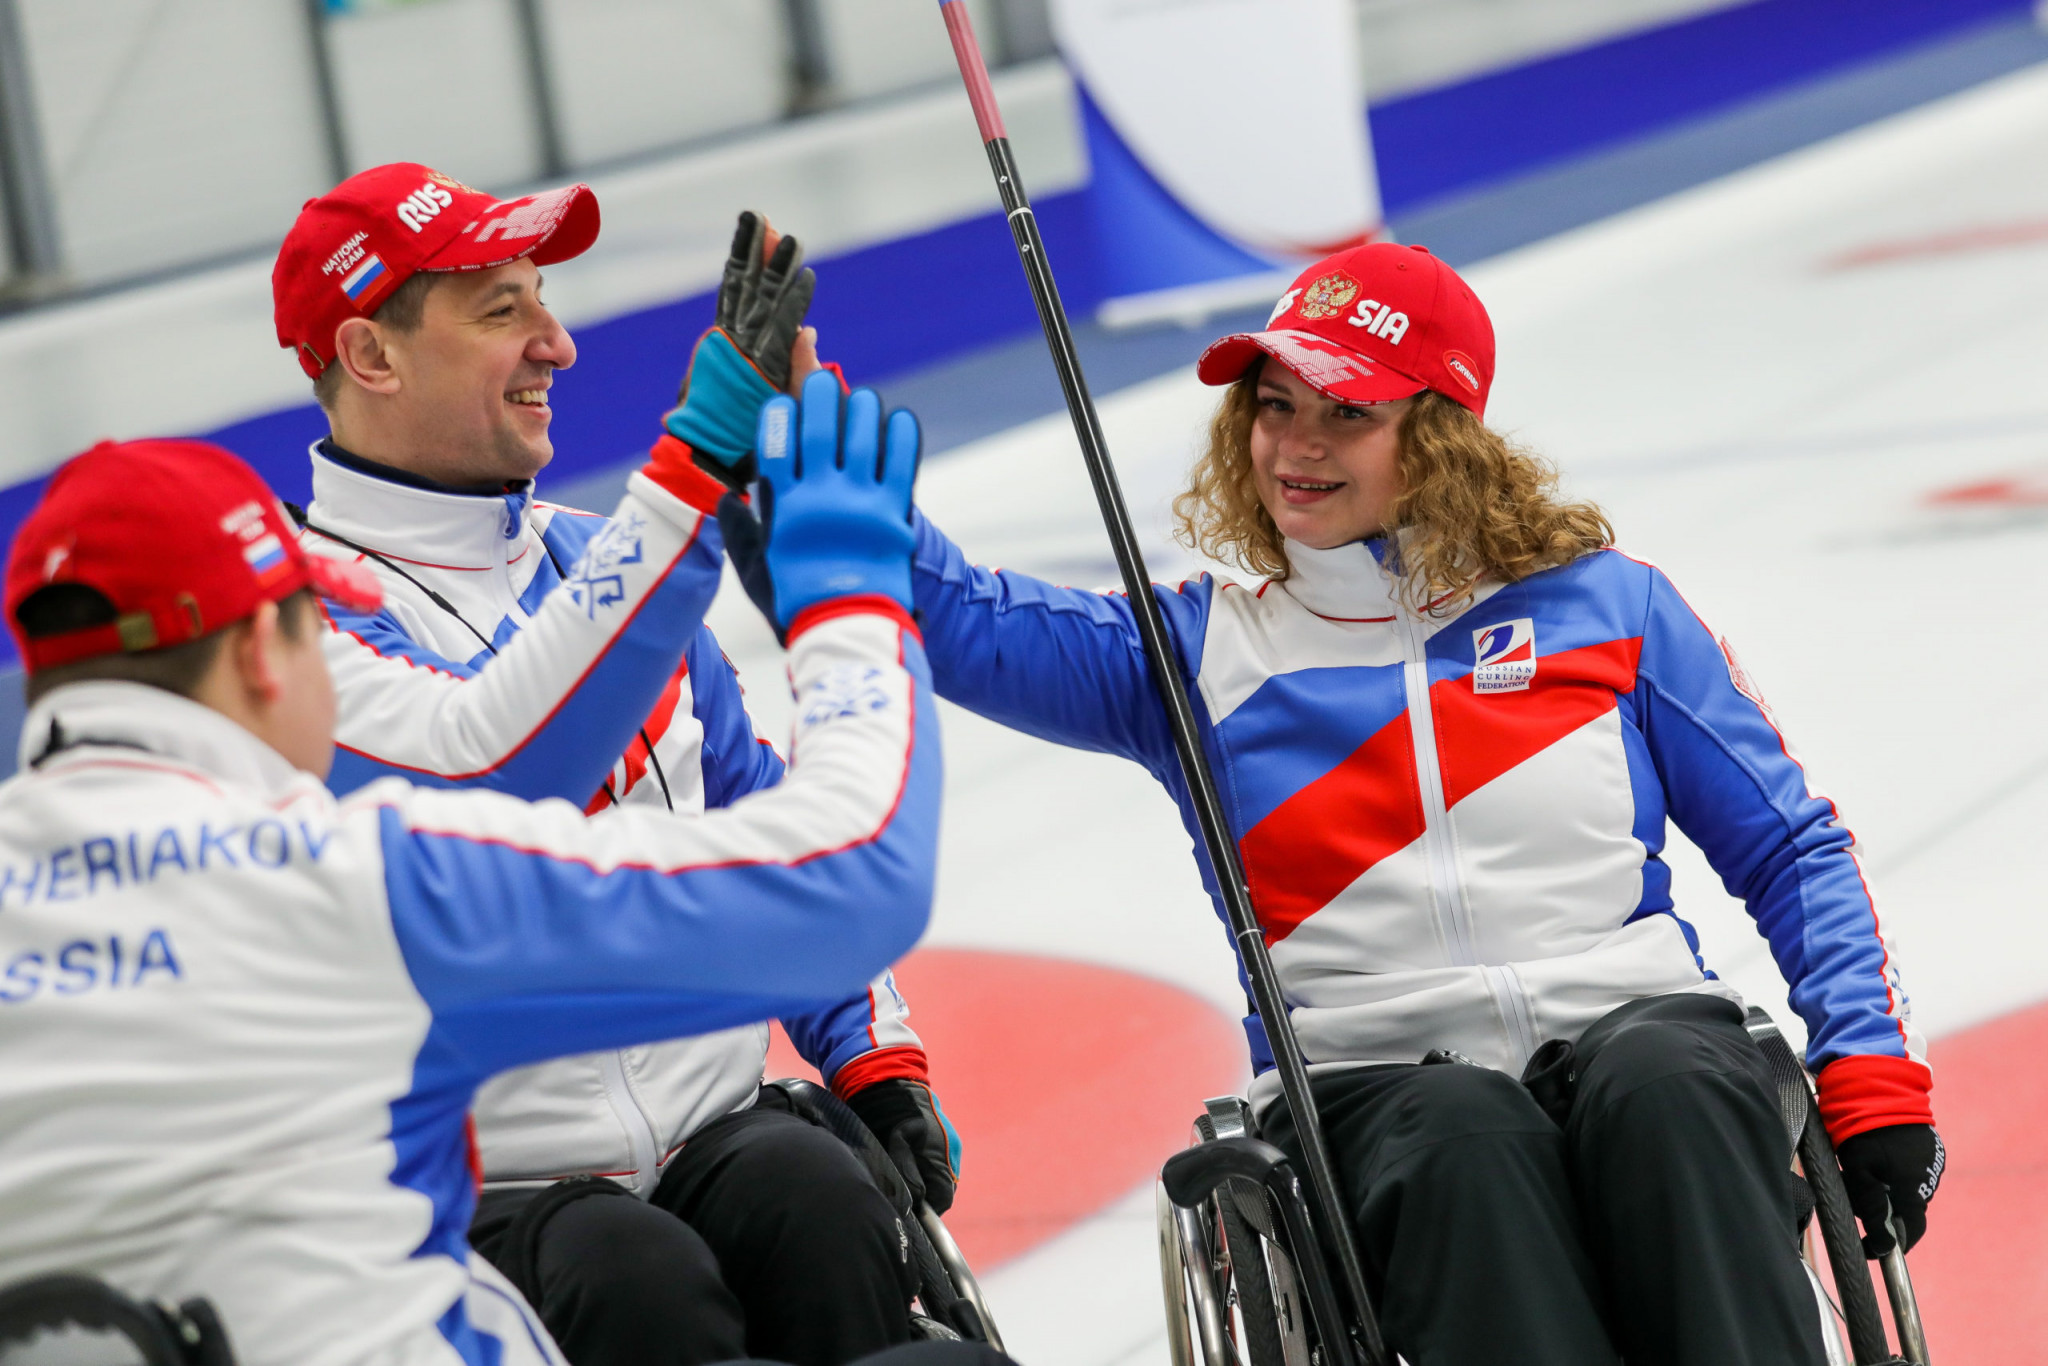 The Russian team in action at the World Wheelchair Curling Championships in Switzerland ©World Curling Federation